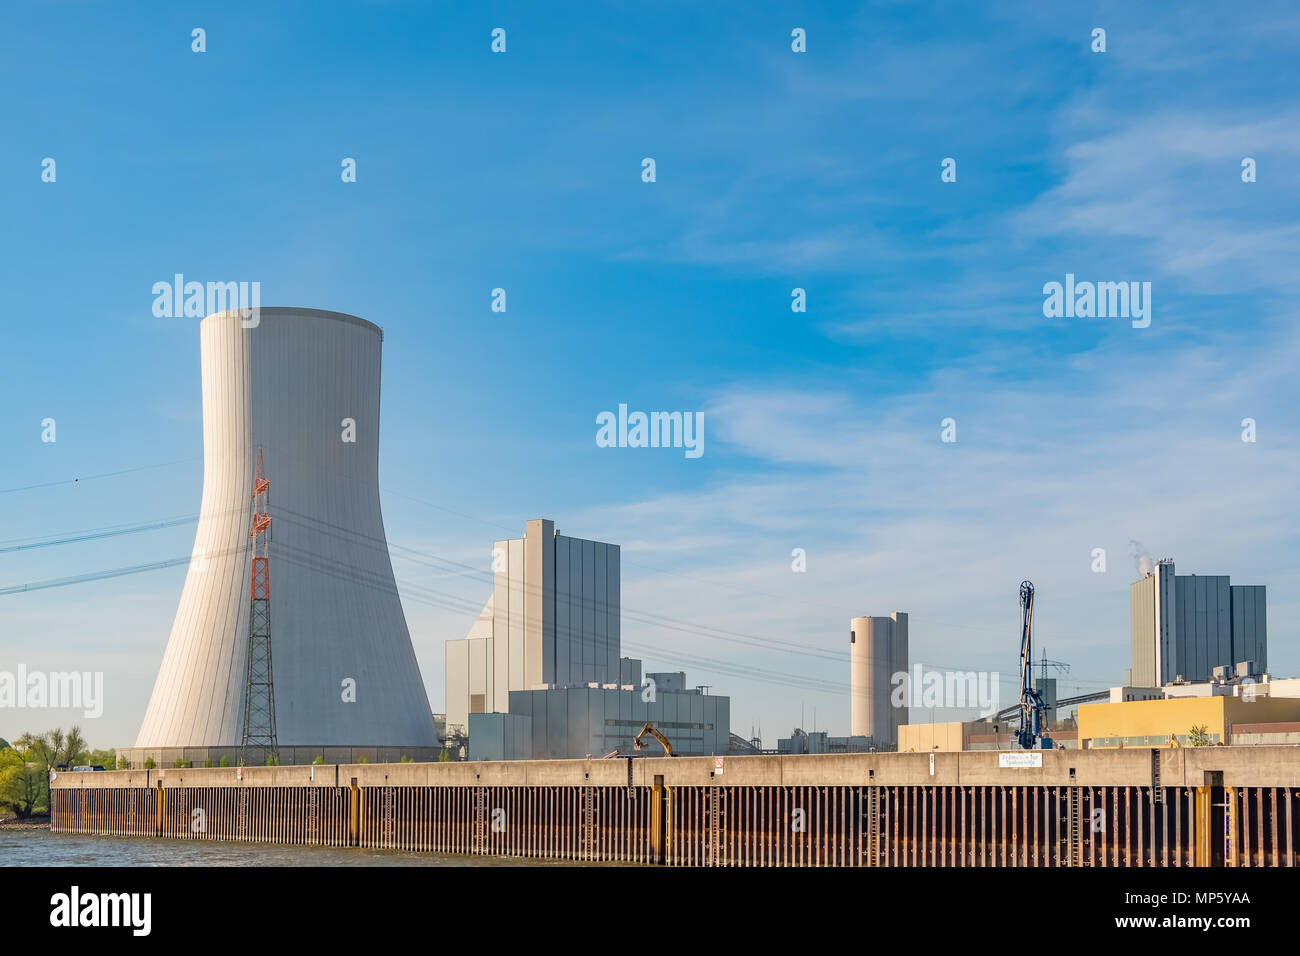 The Duisburg-Walsum coal-fired powerplant is located on the banks of the Rhine River in Germany. - Stock Image